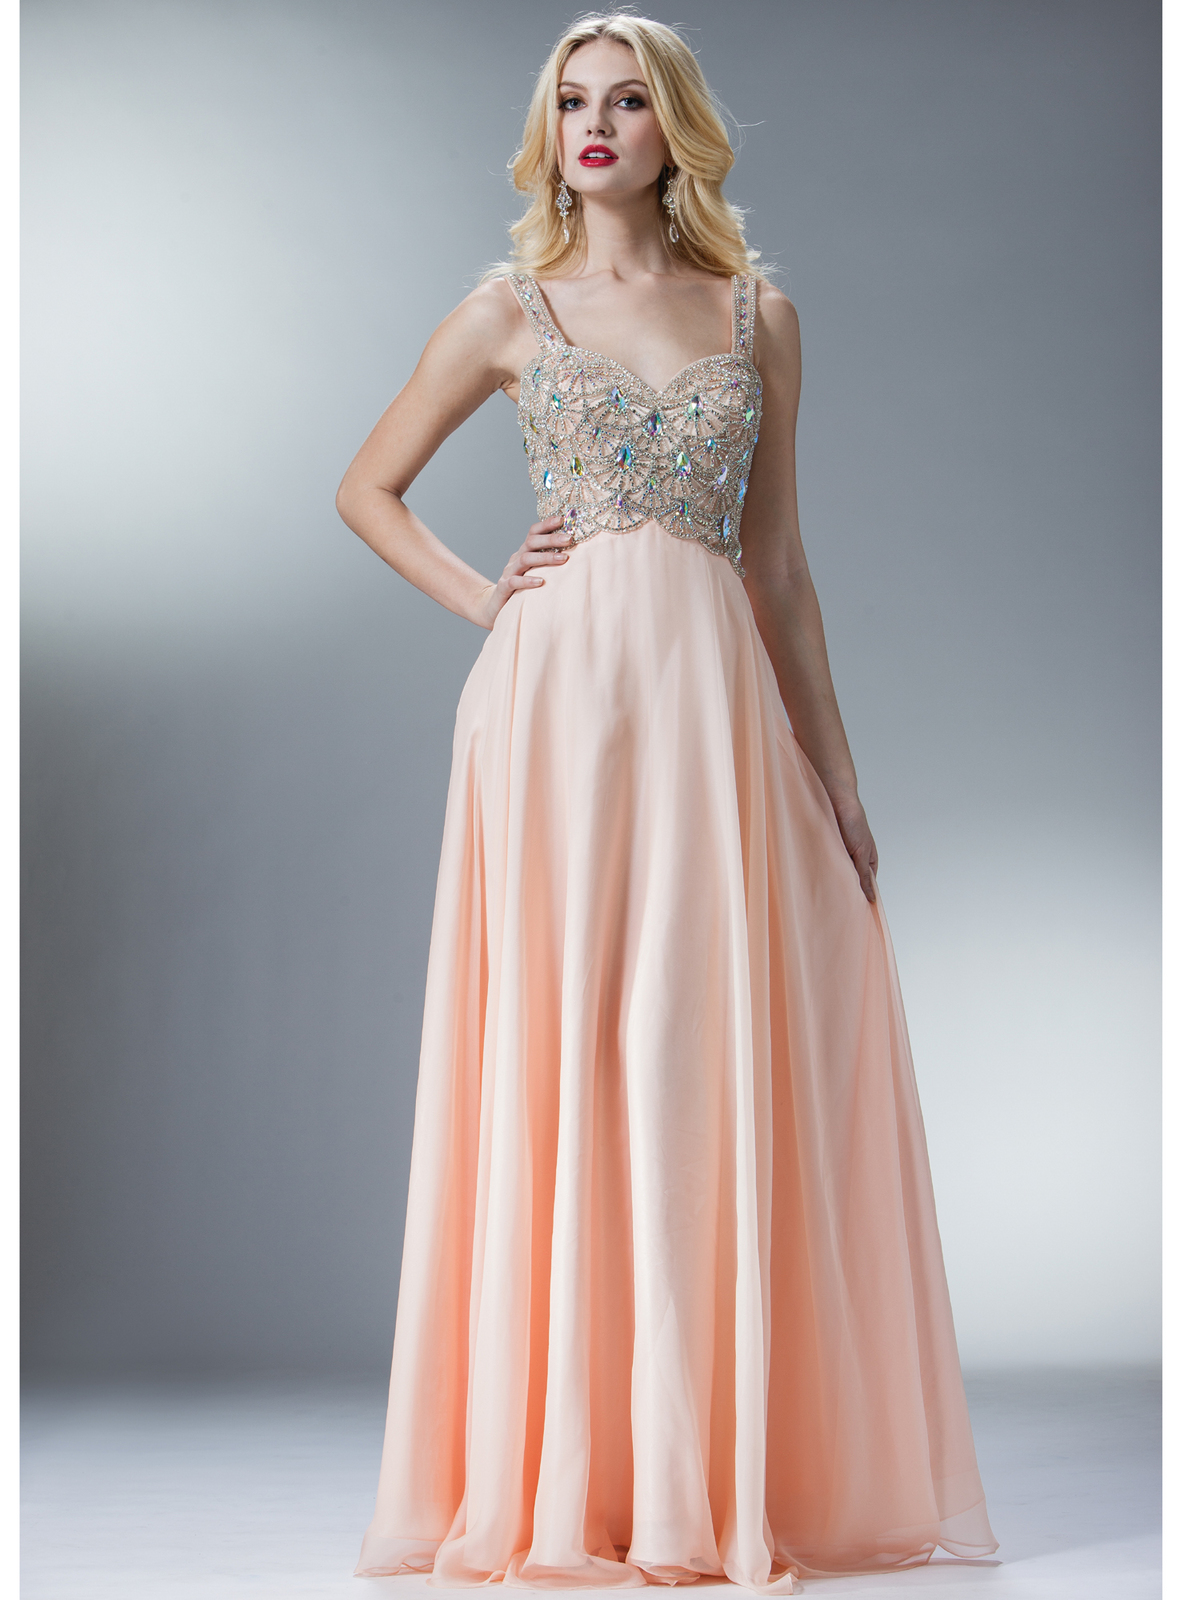 Places To Buy Prom Dresses In Salem Oregon - Holiday Dresses